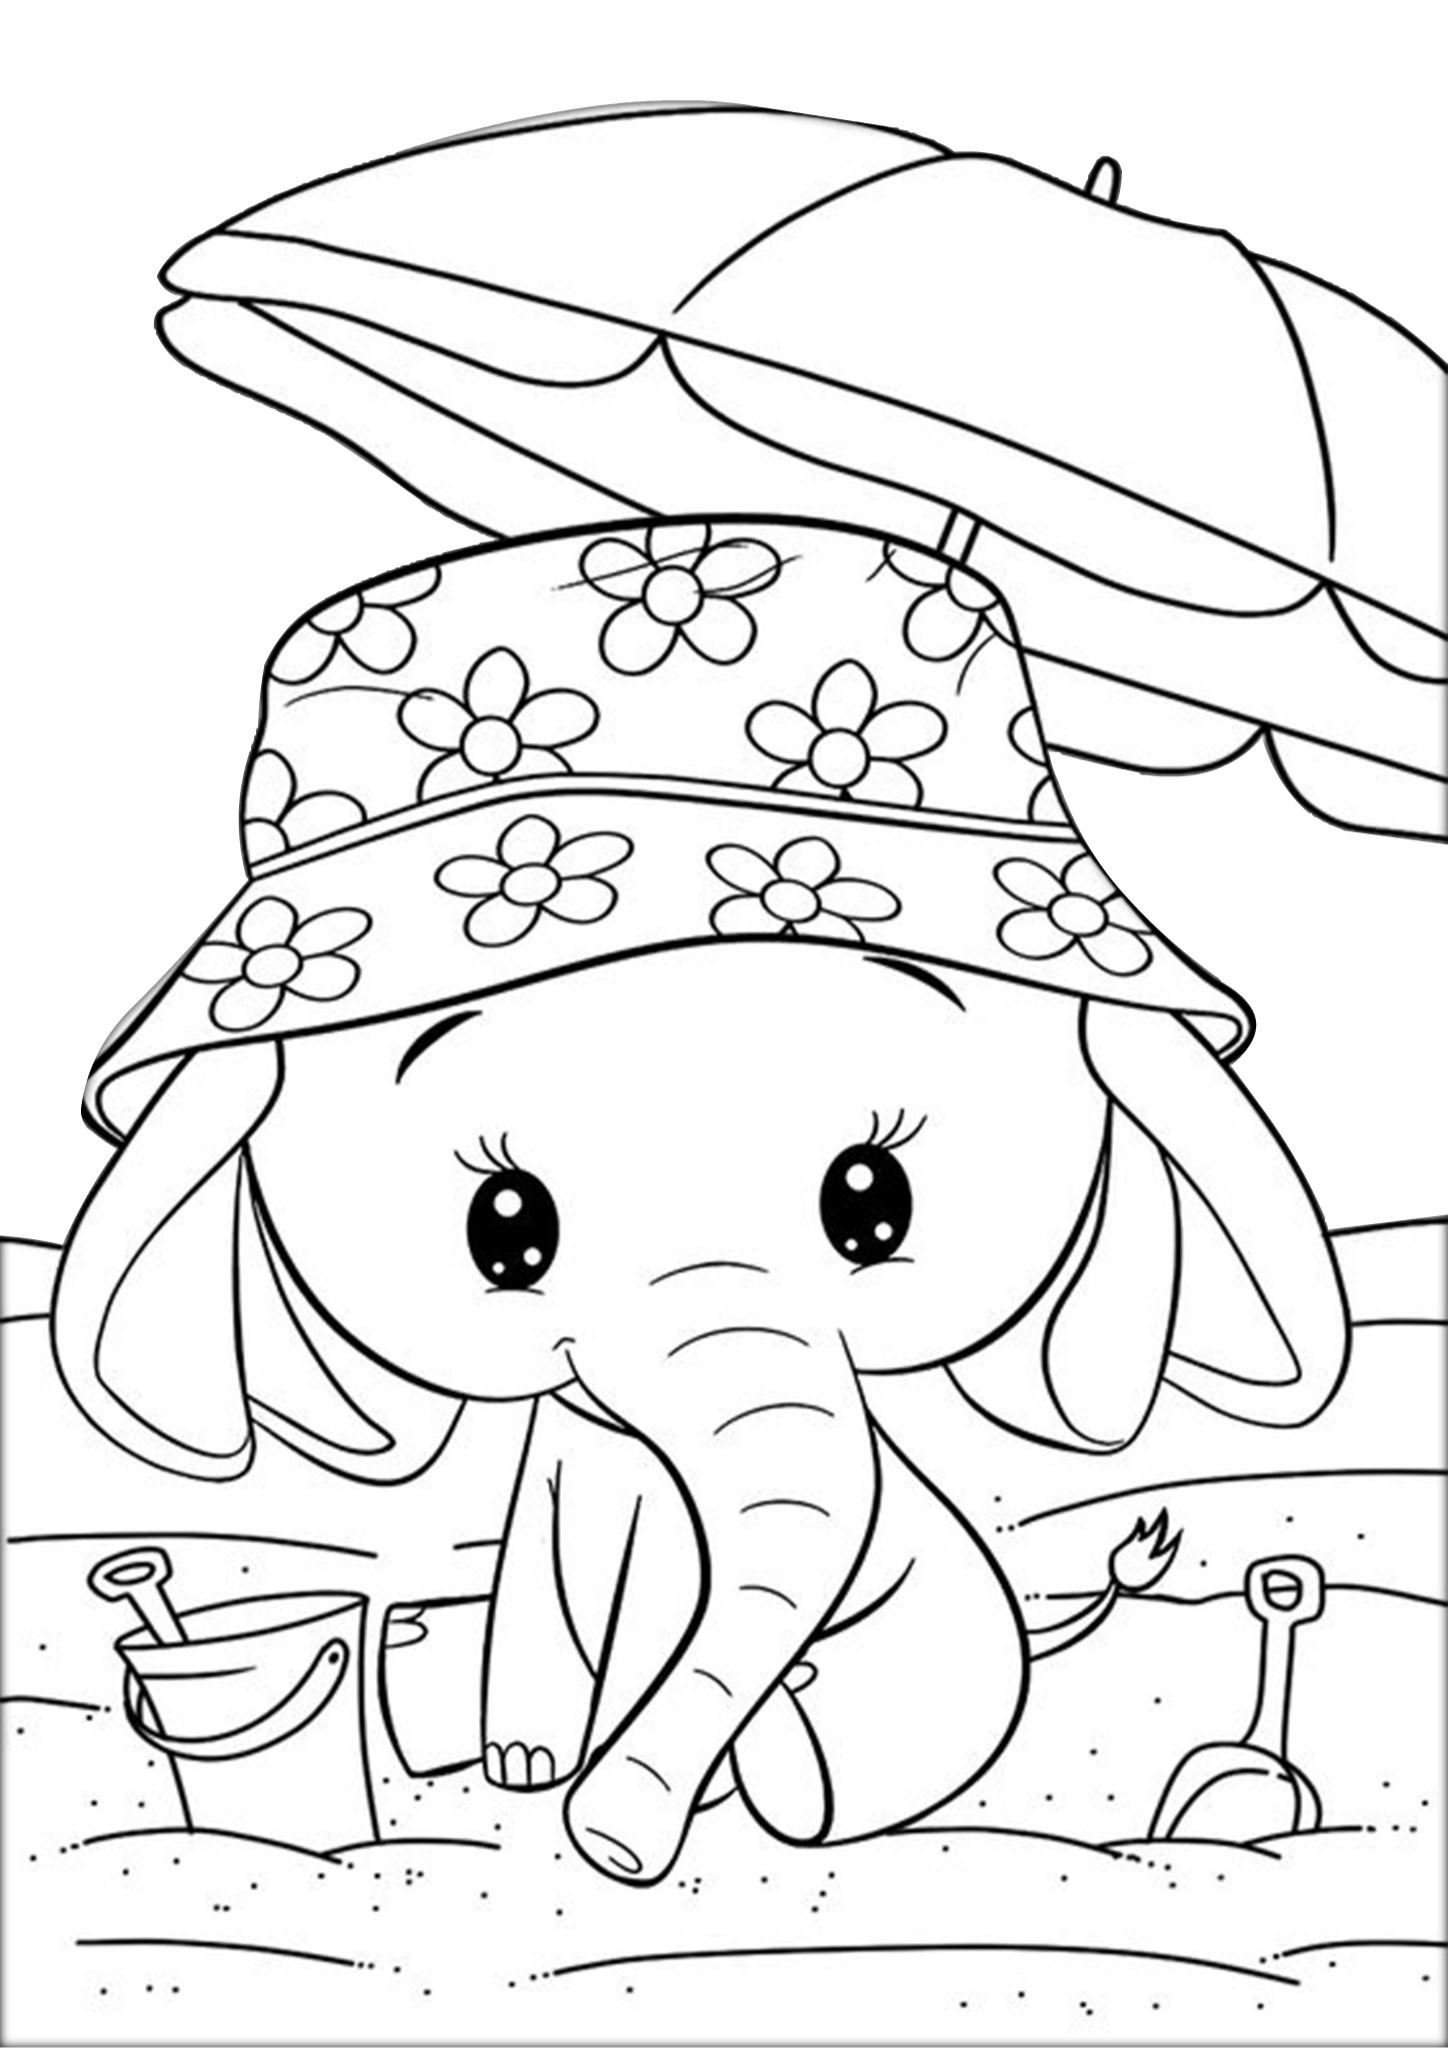 Very Cute adorable Little Elephant Coloring Pages - Print ...